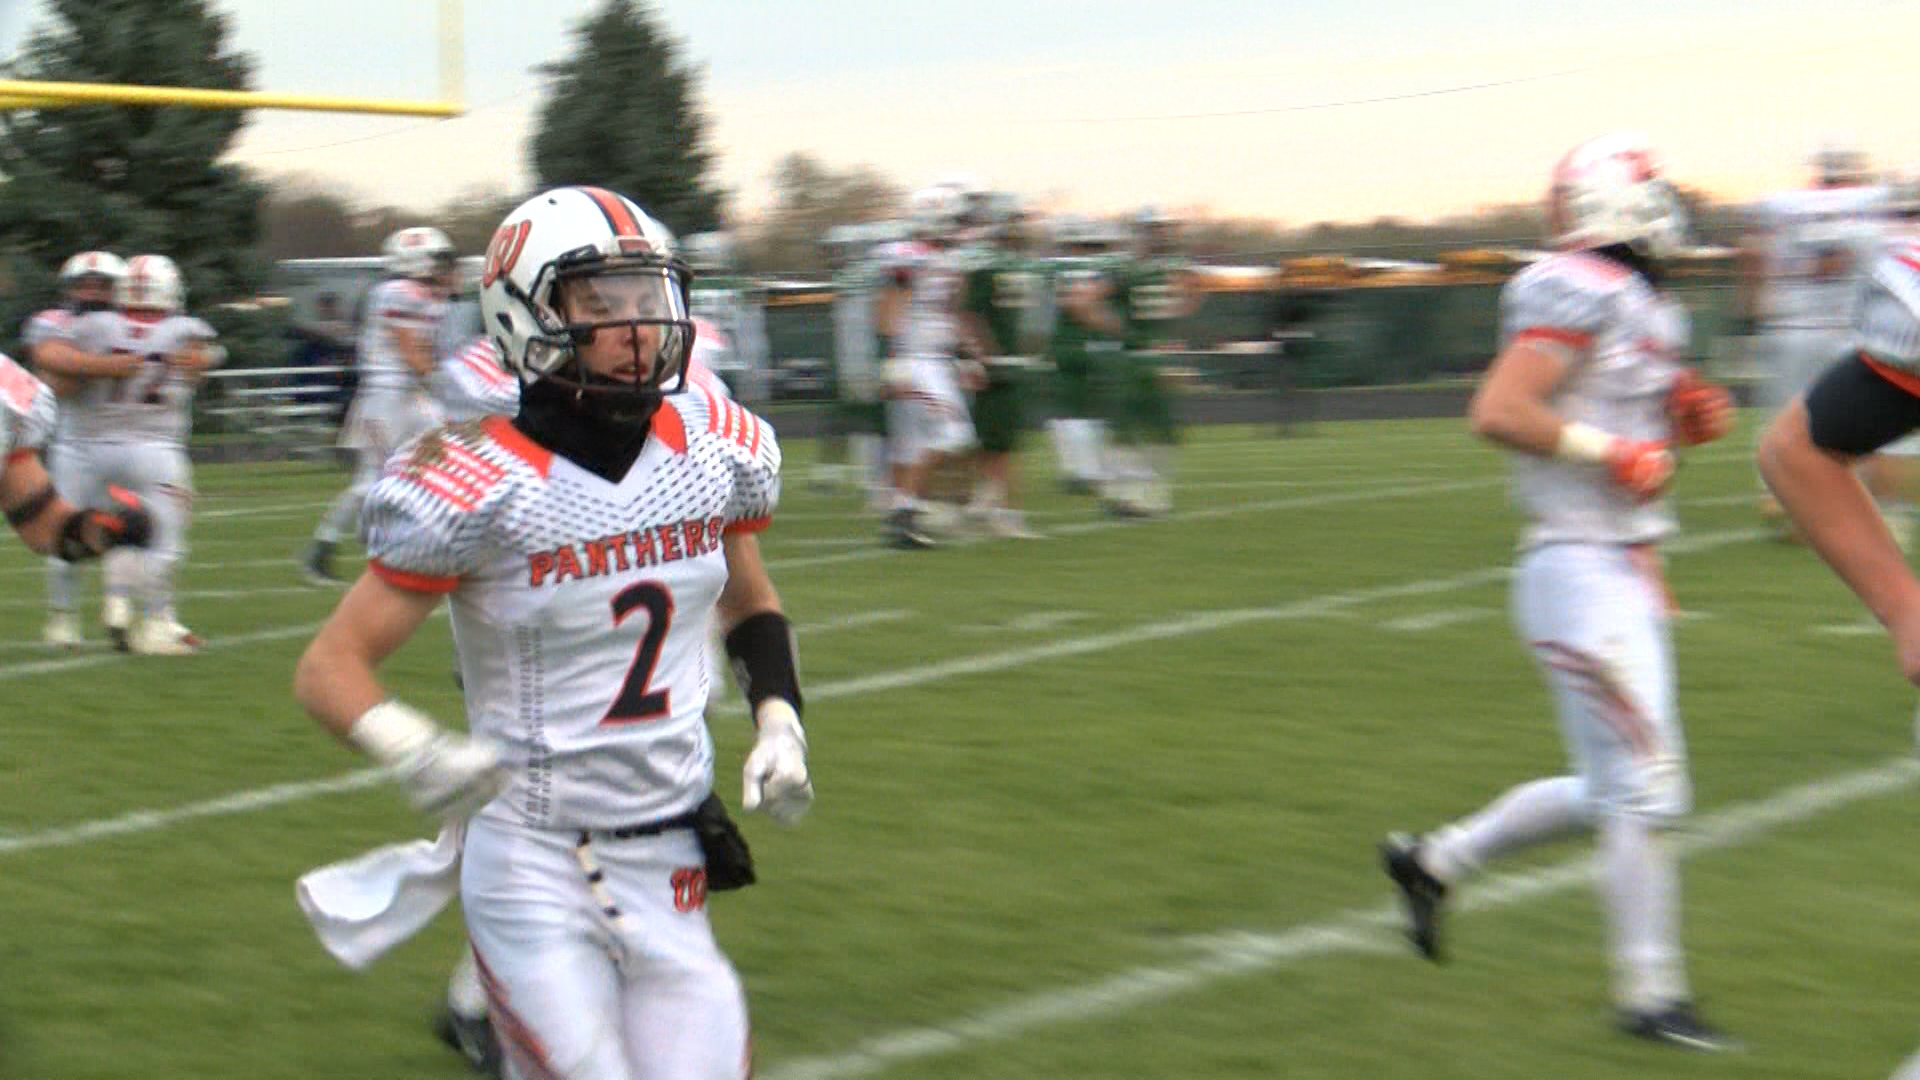 Logan Klein (WASH FB runs off field)_1510887876366.jpg